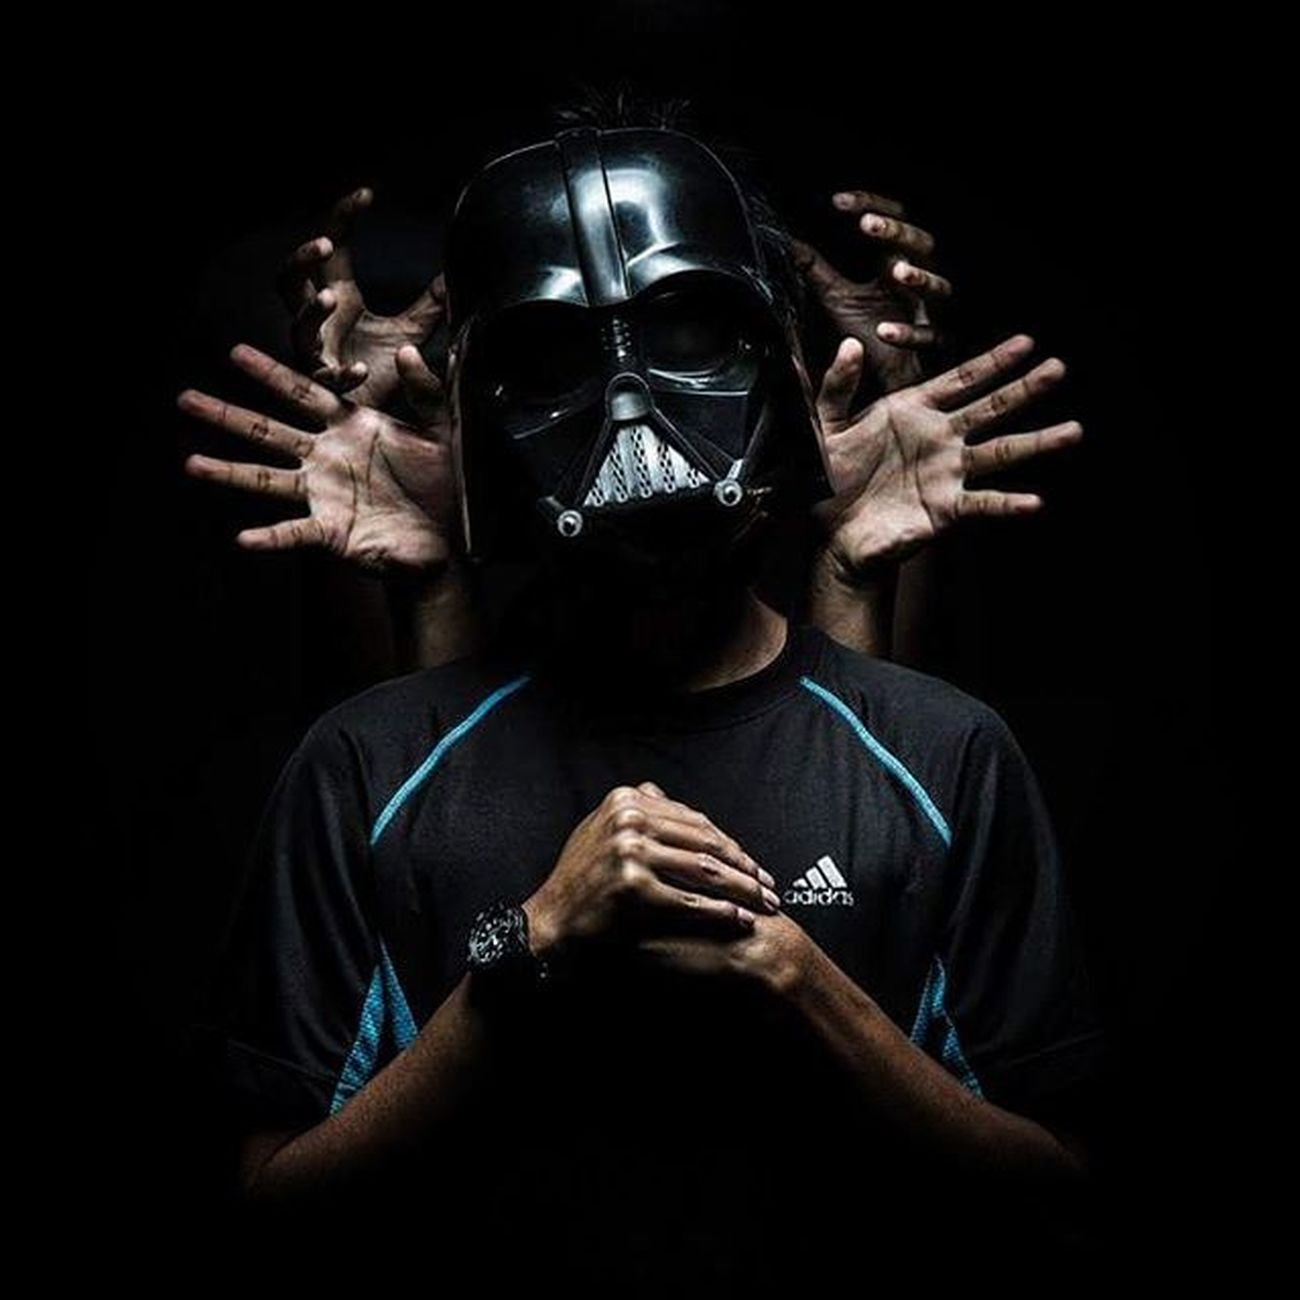 """I am your father "" // ""Den abah kau"" - @depressed_darth - Capture by @zaidi_isa Darthvader Mask Darthvadermask Starwars Imyourfather Studiolight Lighting Photographer Photography Adidasoriginals Adidas Instagram Instadaily"